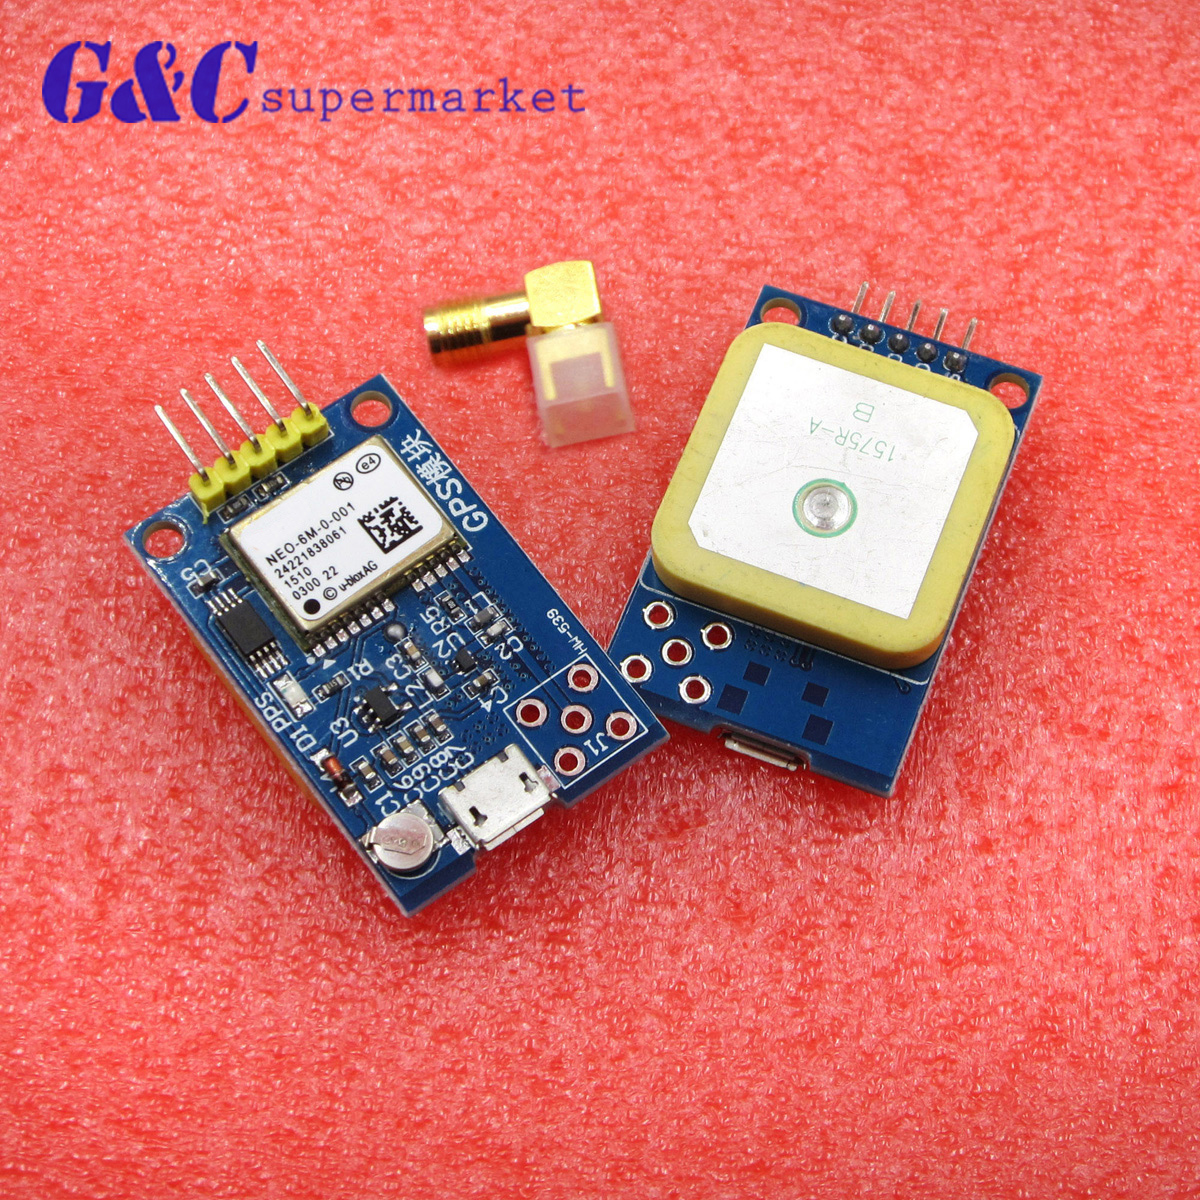 Lm675 Lm1875t Tda2030 Tda2030a Audio Power Amplifier Pcb Board Diy In Ac Current Source Application General Purpose Gps Module Micro Usb Neo 6m Satellite Positioning 51 Single Chip For Stm32 Routines